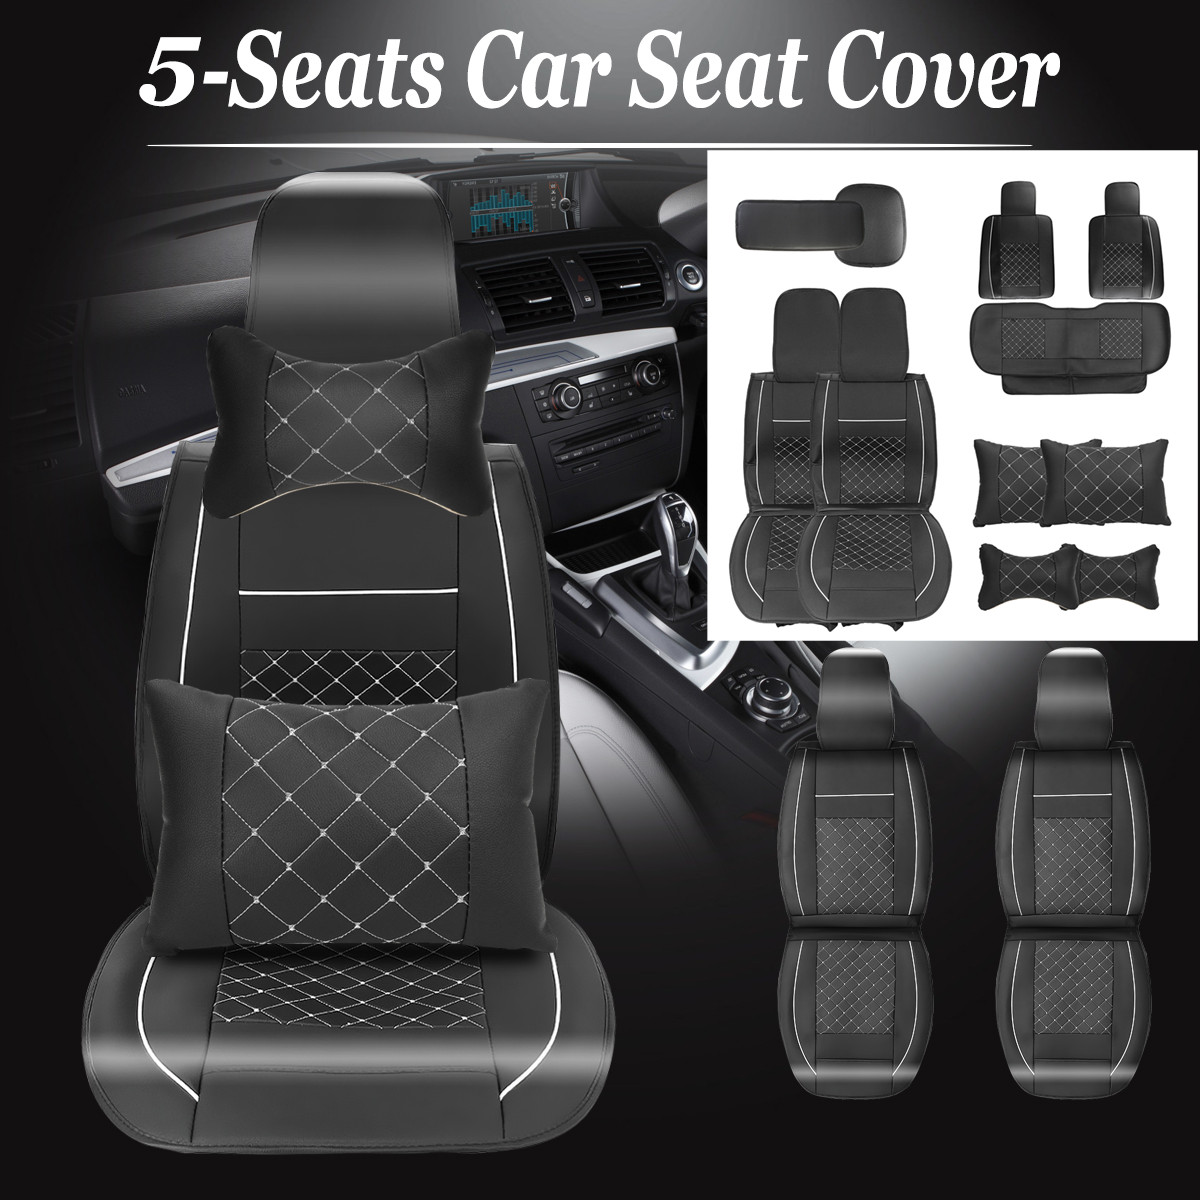 11 in 1 5-Seats Universial Sedan SUV PU Leather Car Seat Front+Rear Seat Cushion Cover Protector With 2 x Neck Cushion Pillows+2 x Back Pillows